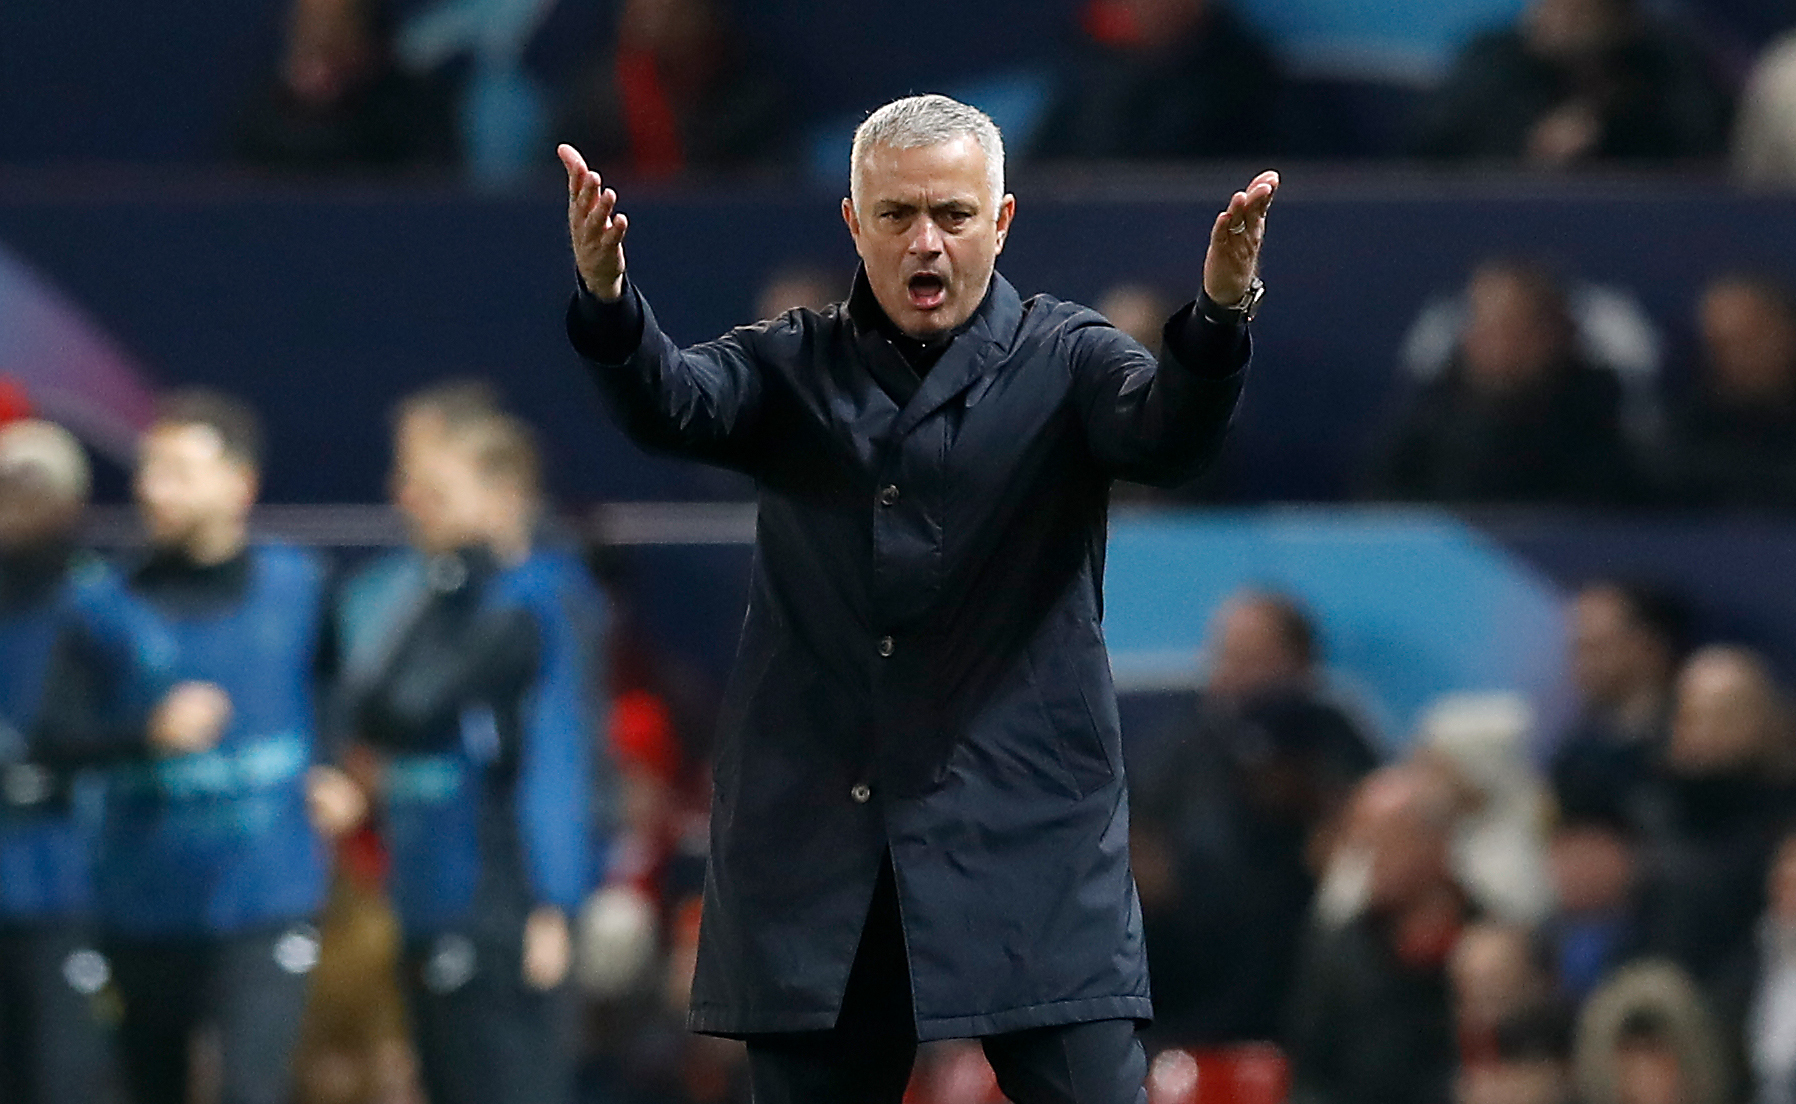 Ex-Manchester United boss Jose Mourinho to host Champions League TV show